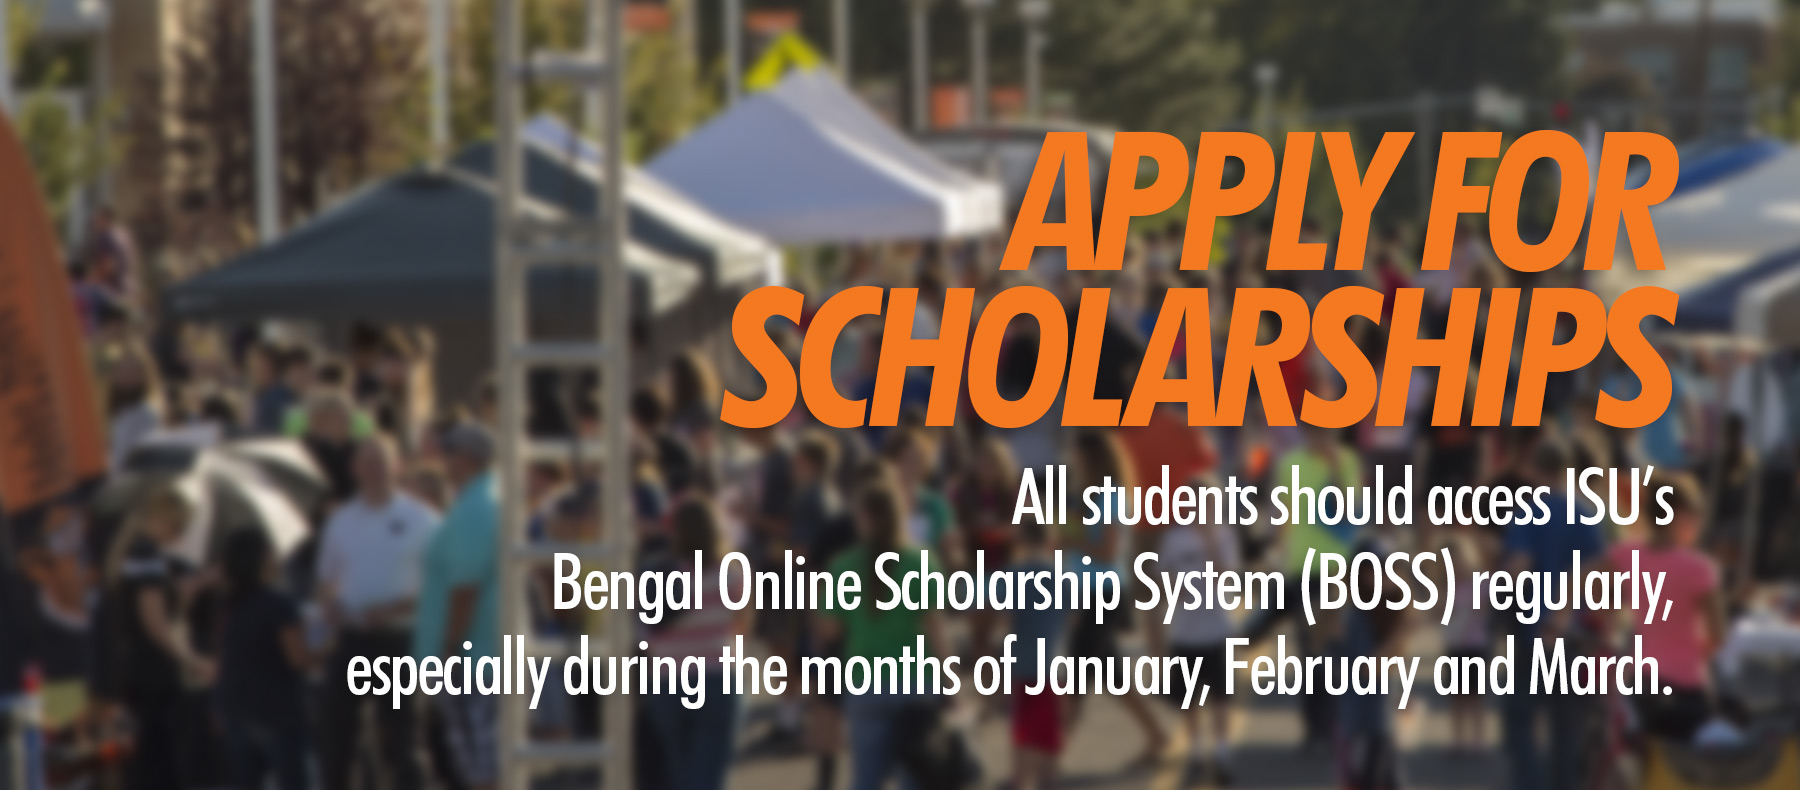 One application for many scholarships